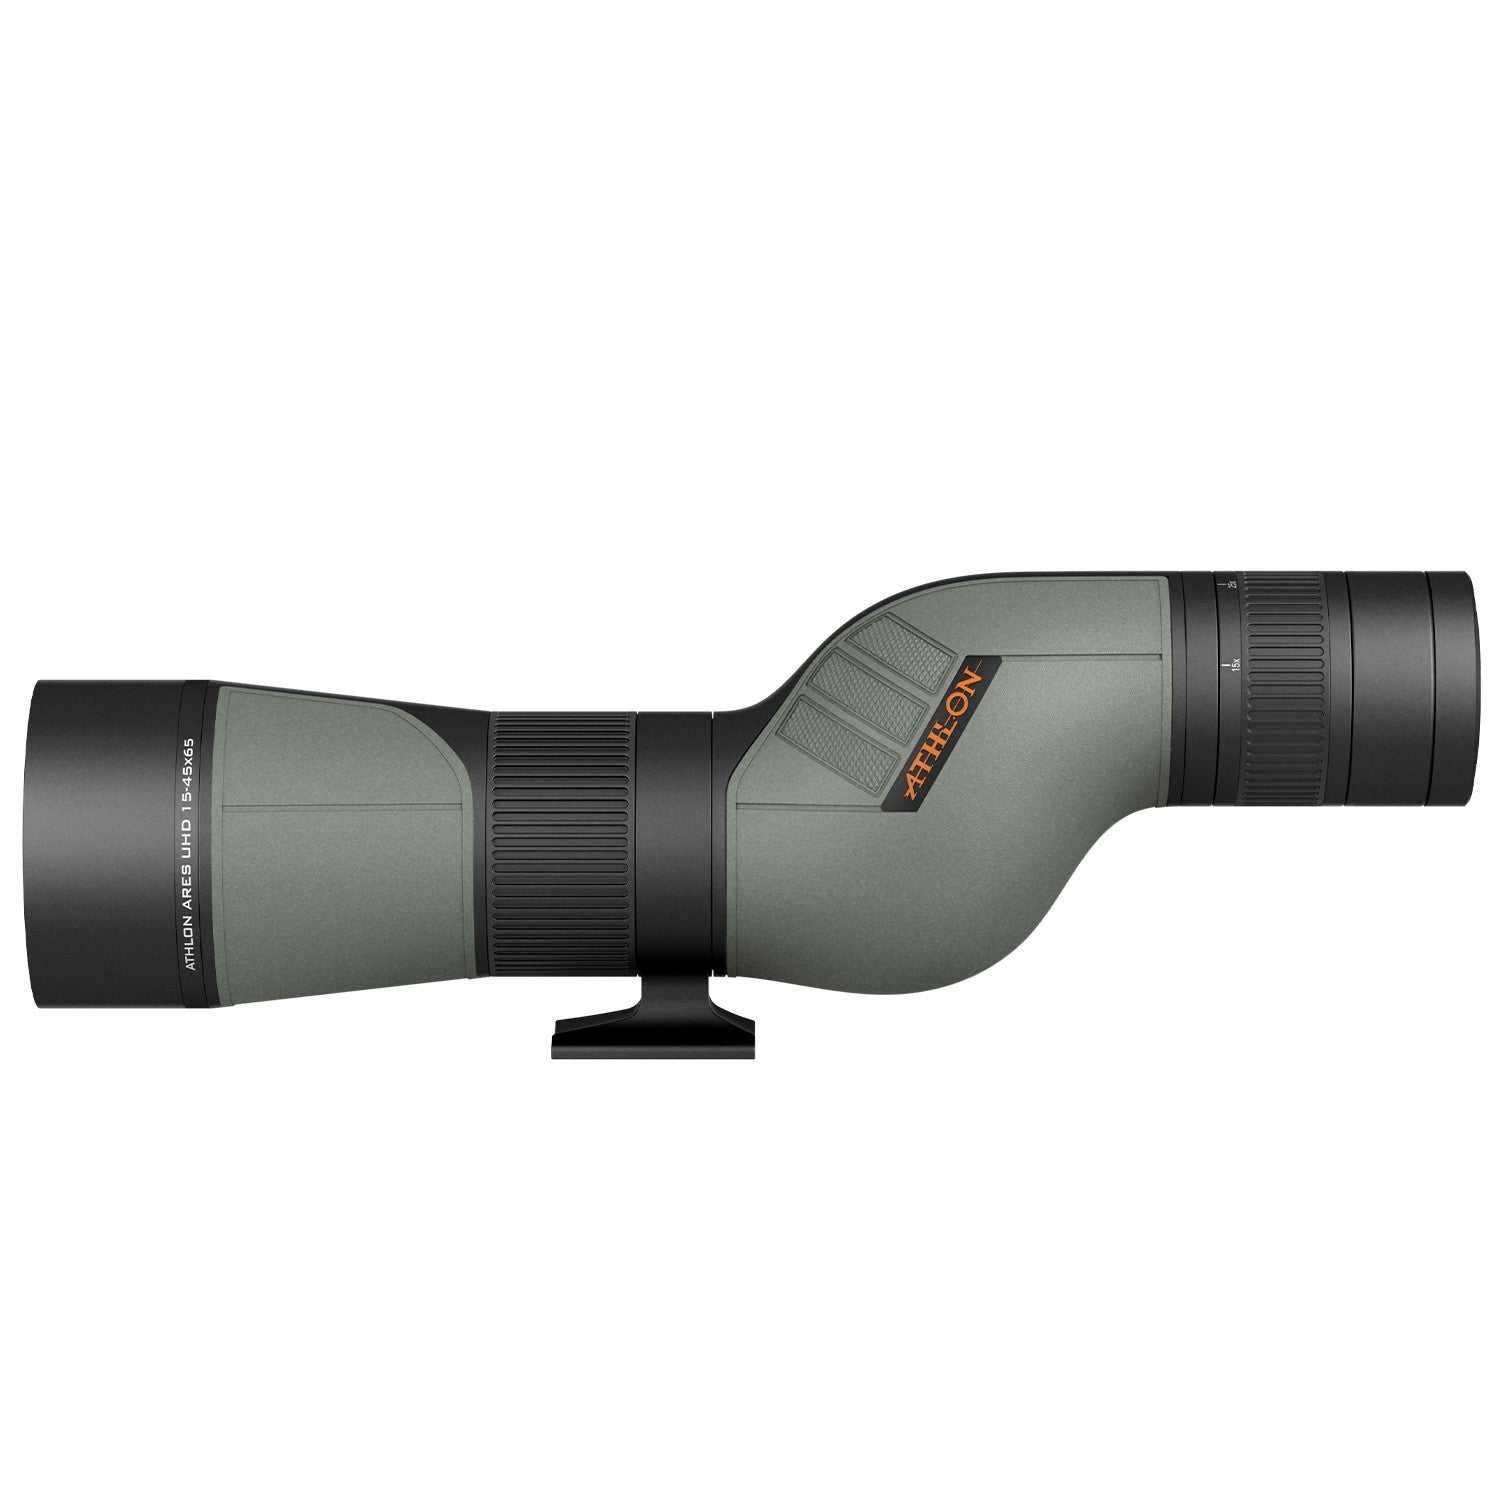 Athlon Optics Ares G2 UHD 15-45×65mm – Straight Angle Spotting Scope